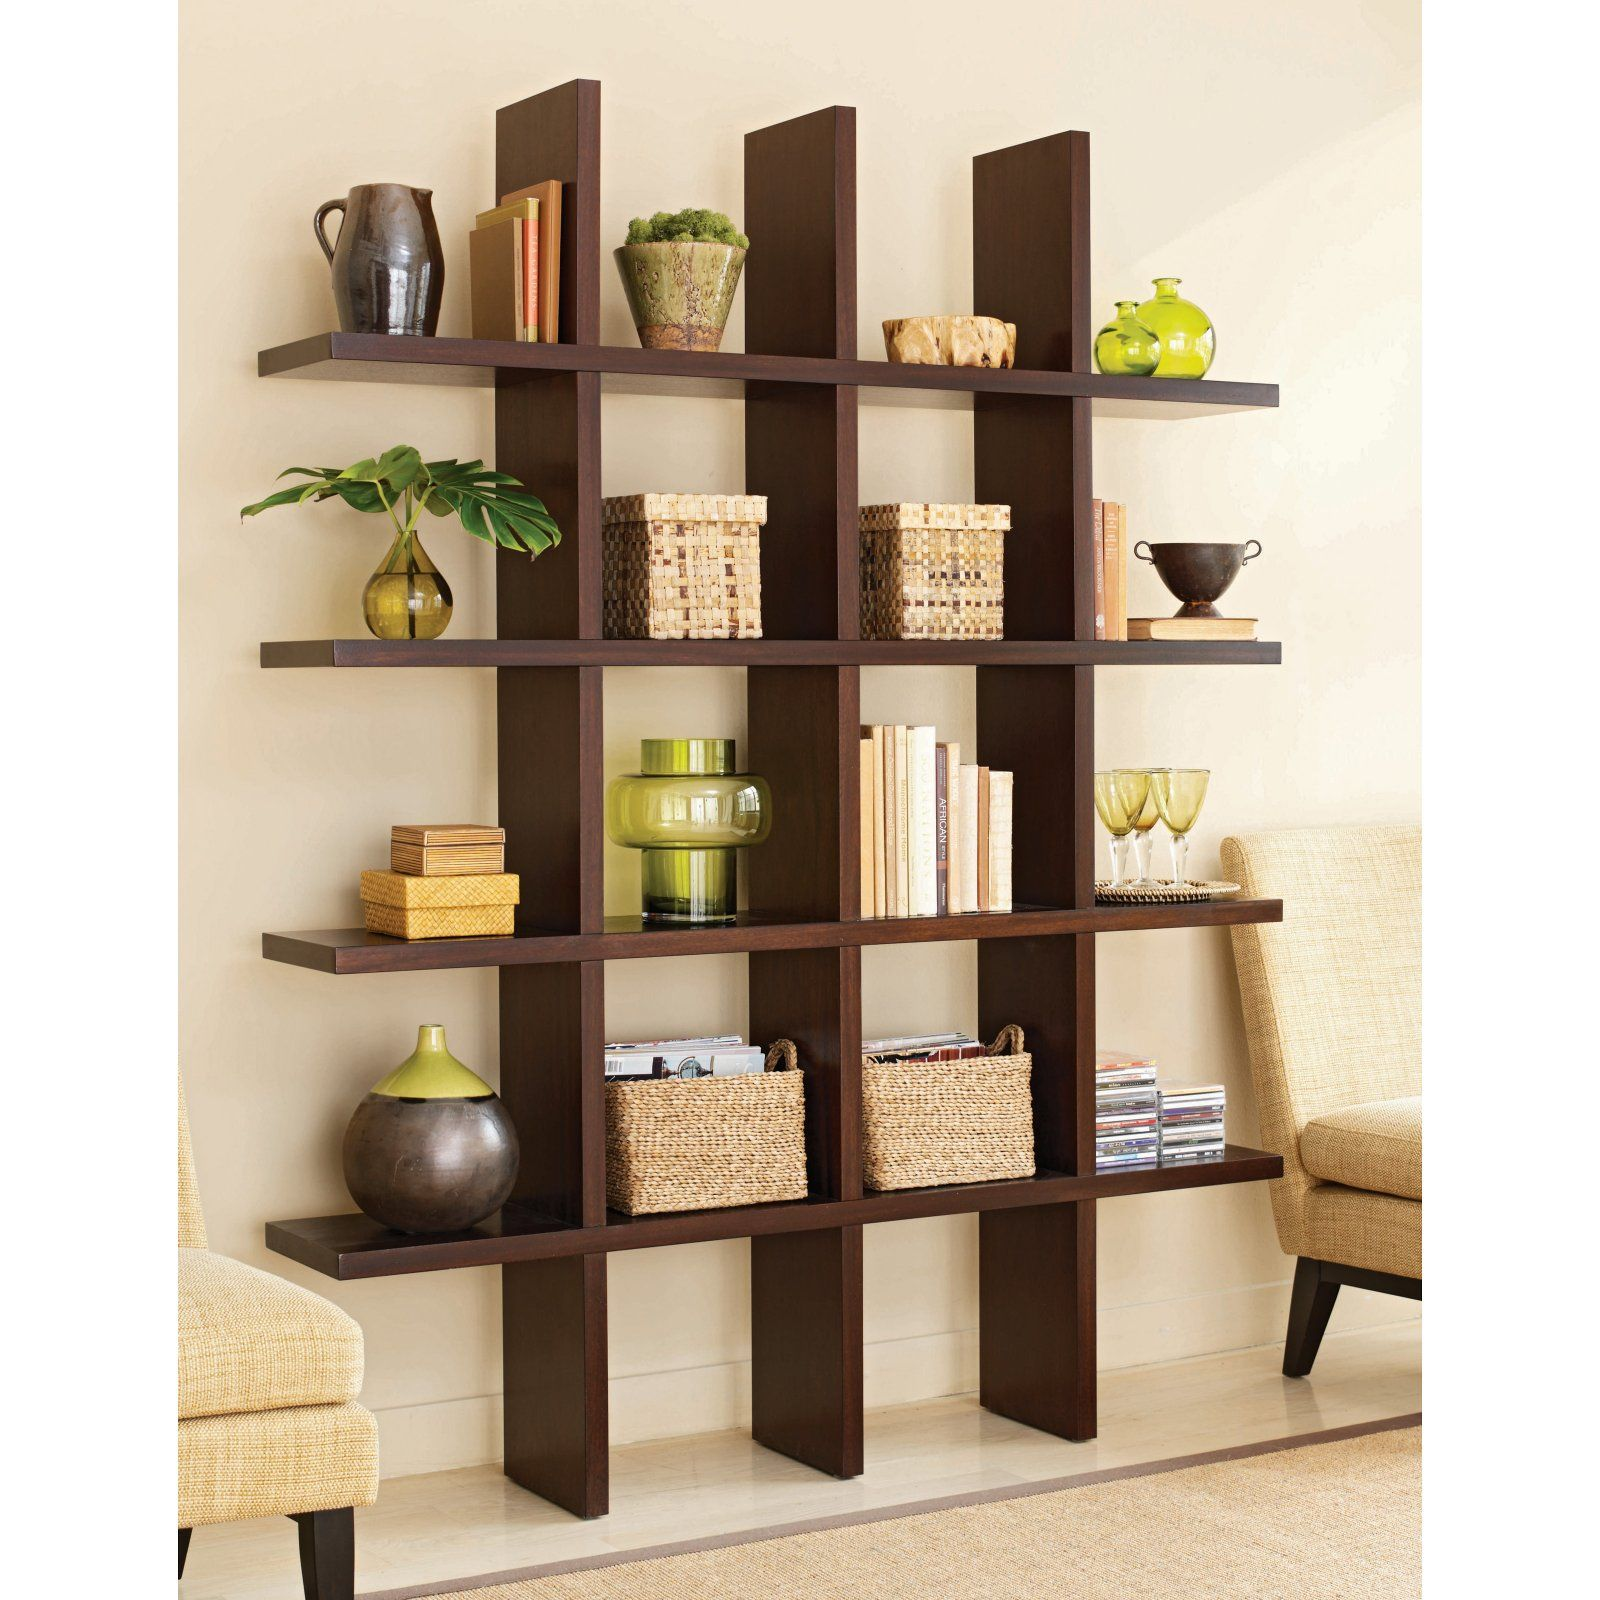 Tag Tic Tac Toe Bookcase Room Divider - Bookcases at Book Cases ...